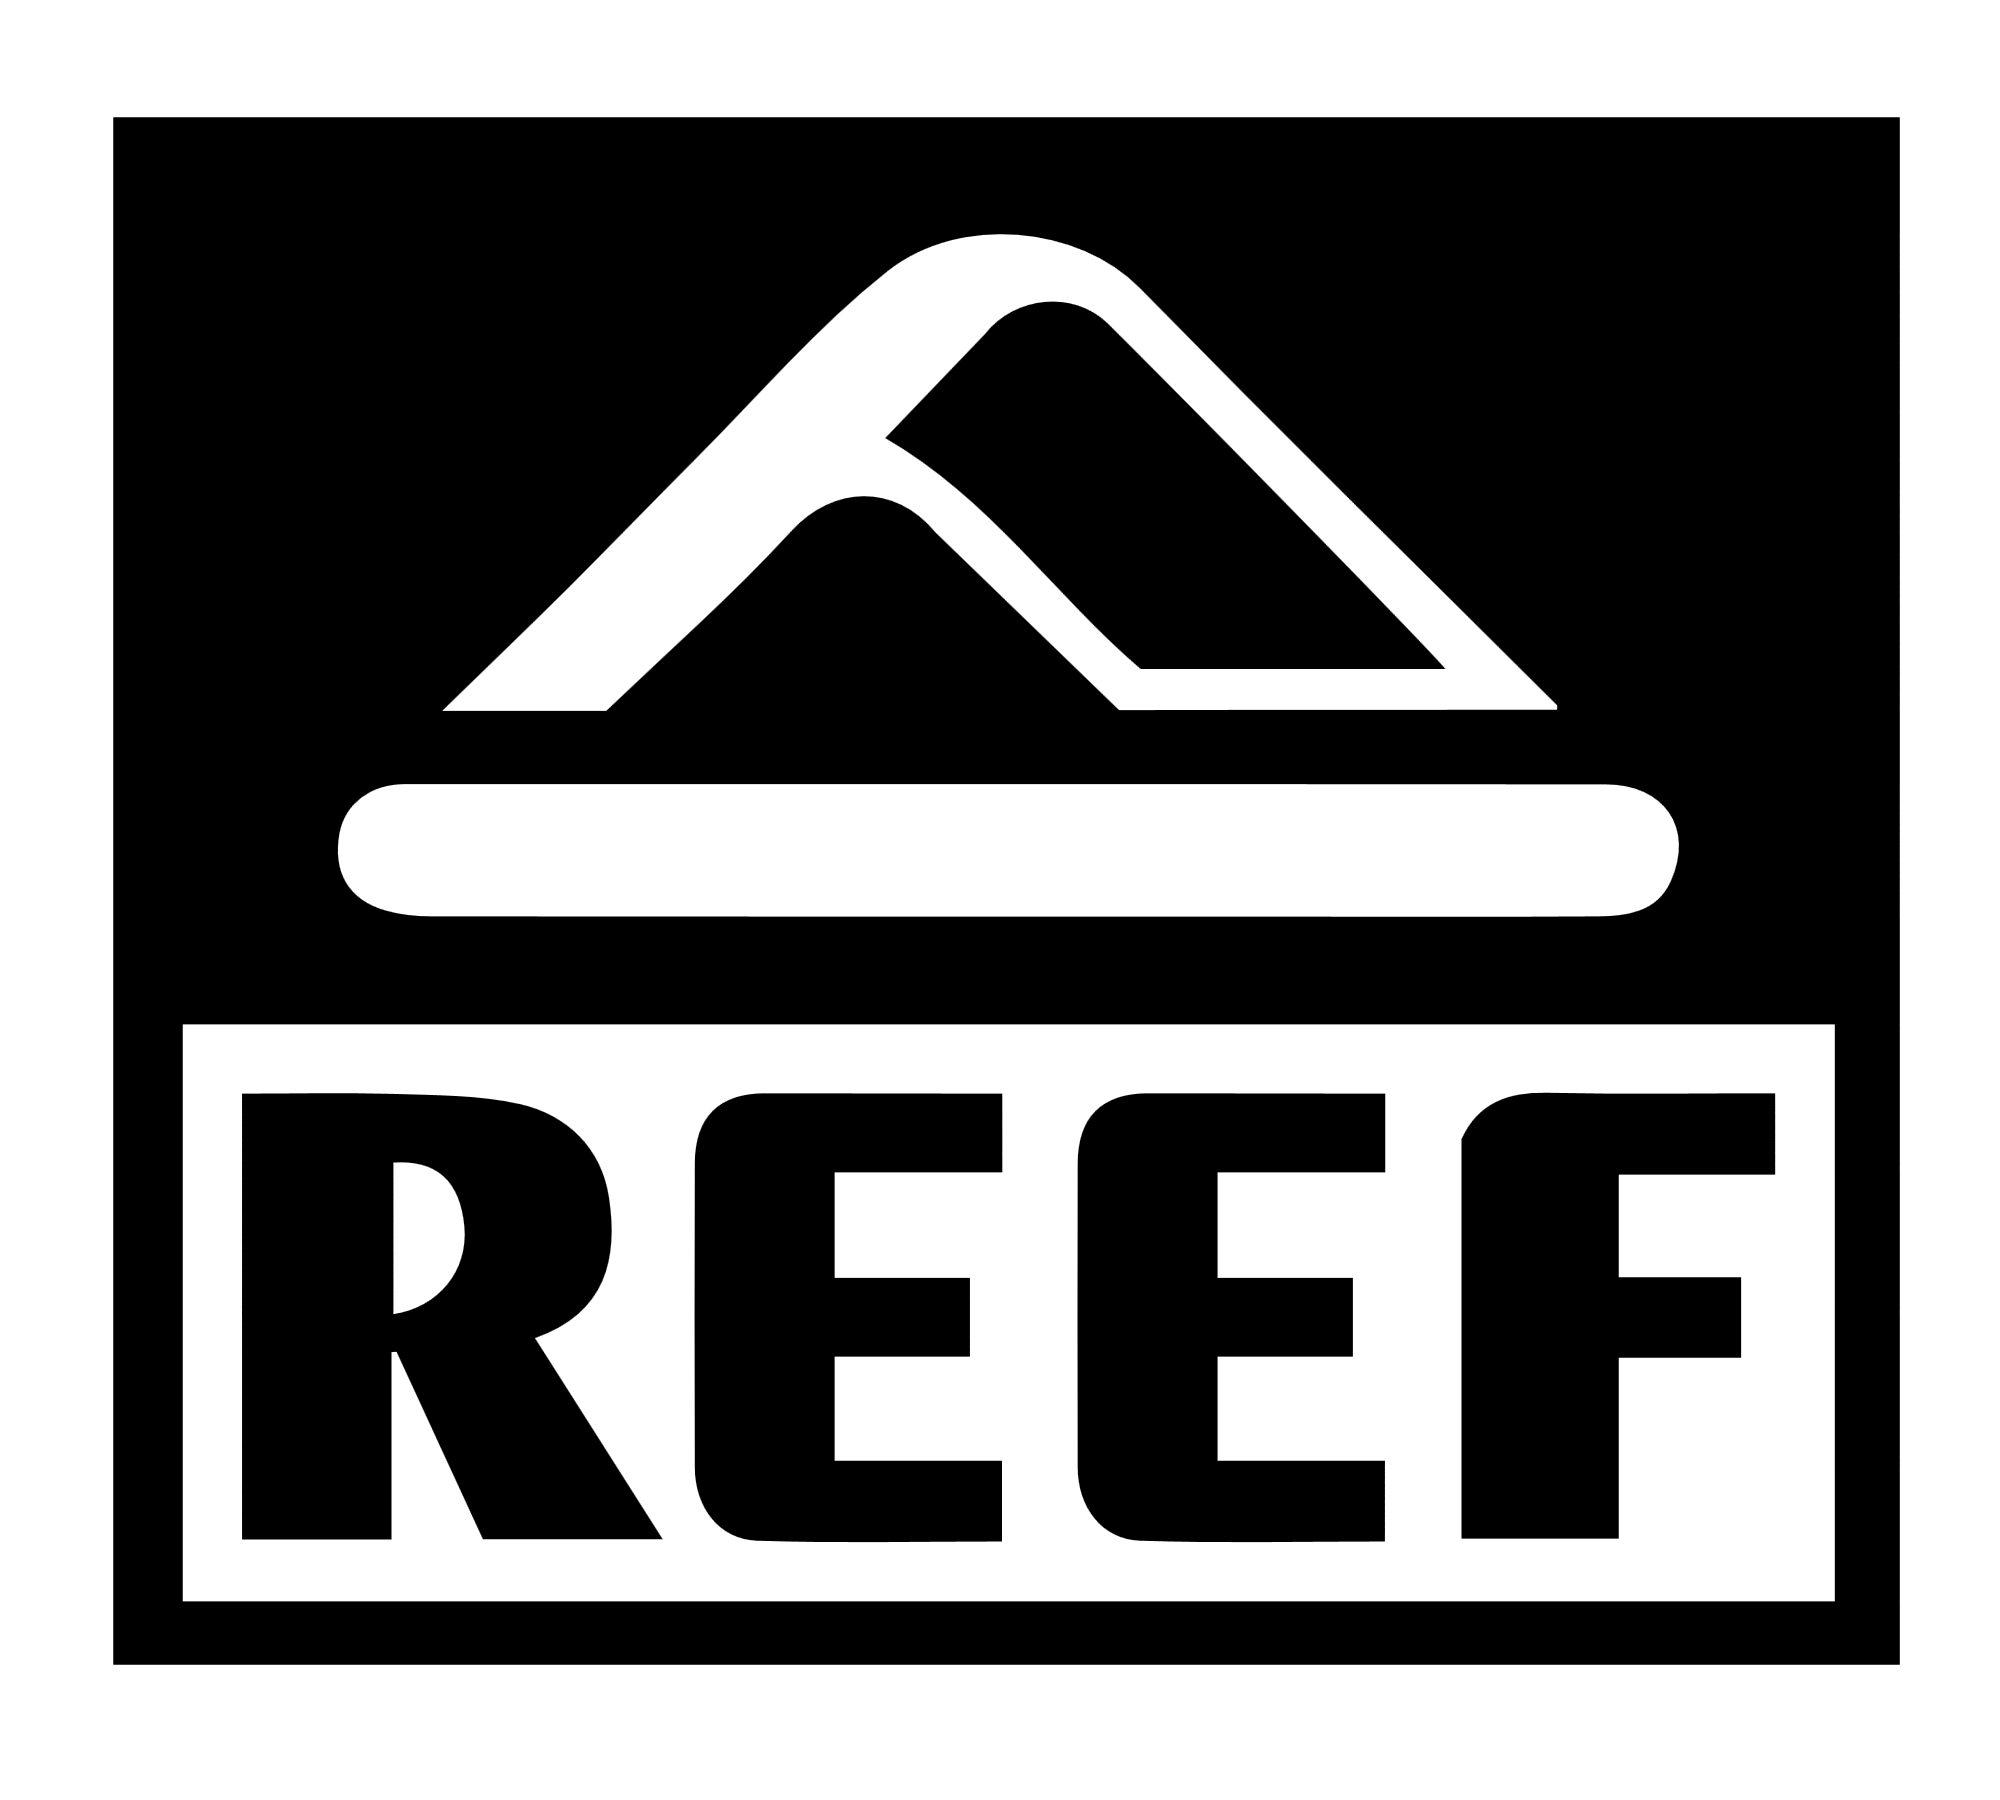 Reef coupon codes